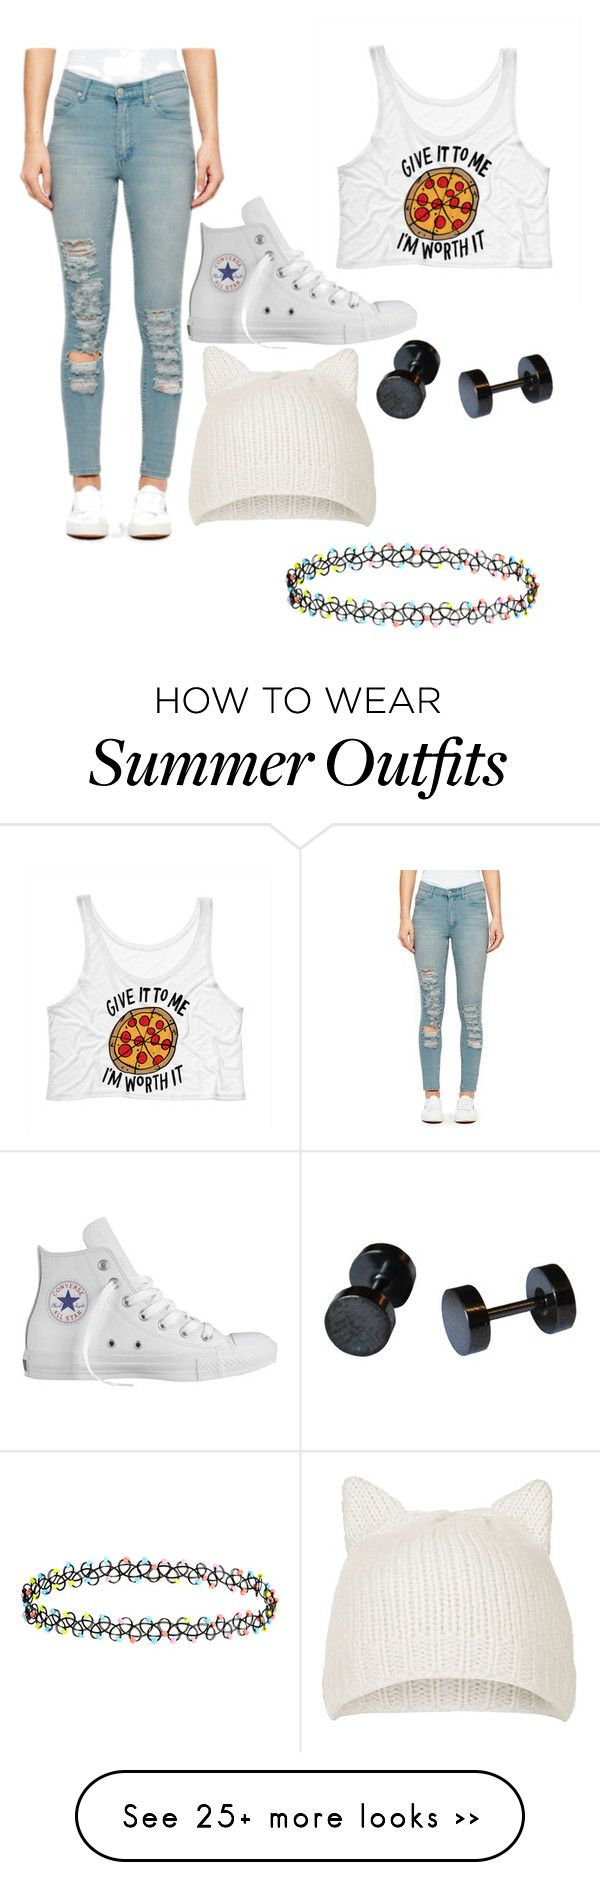 """""""Untitled #20"""" by mariahbatman on Polyvore featuring Cheap Monday, Converse, Topshop and Accessorize"""